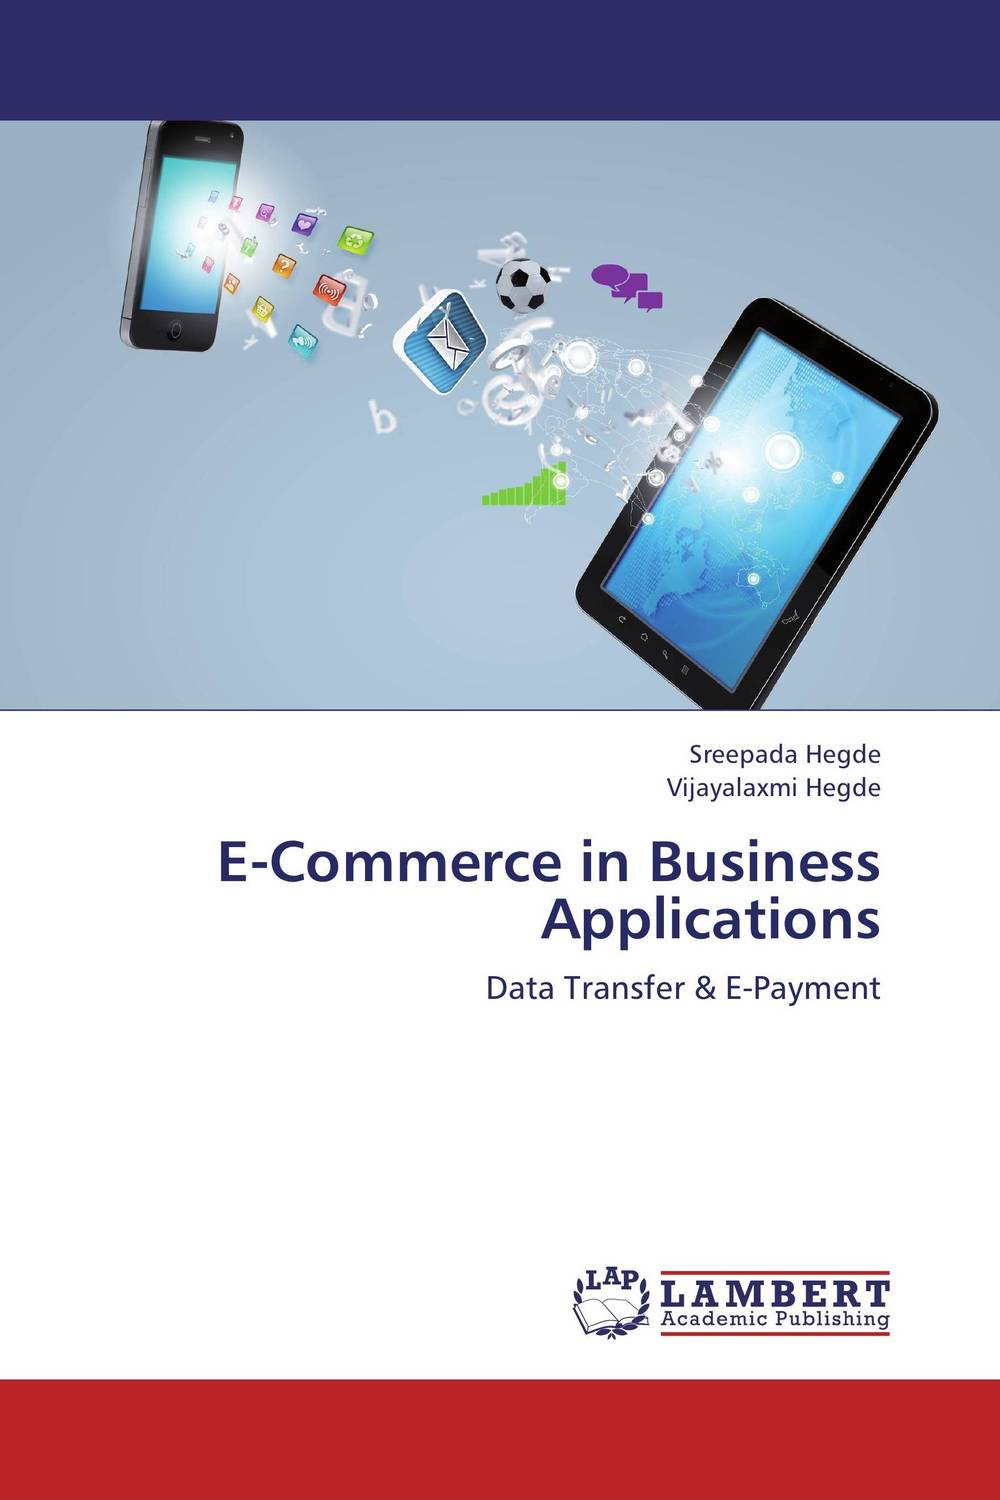 E-Commerce in Business Applications mastering business communication macmillan master series business